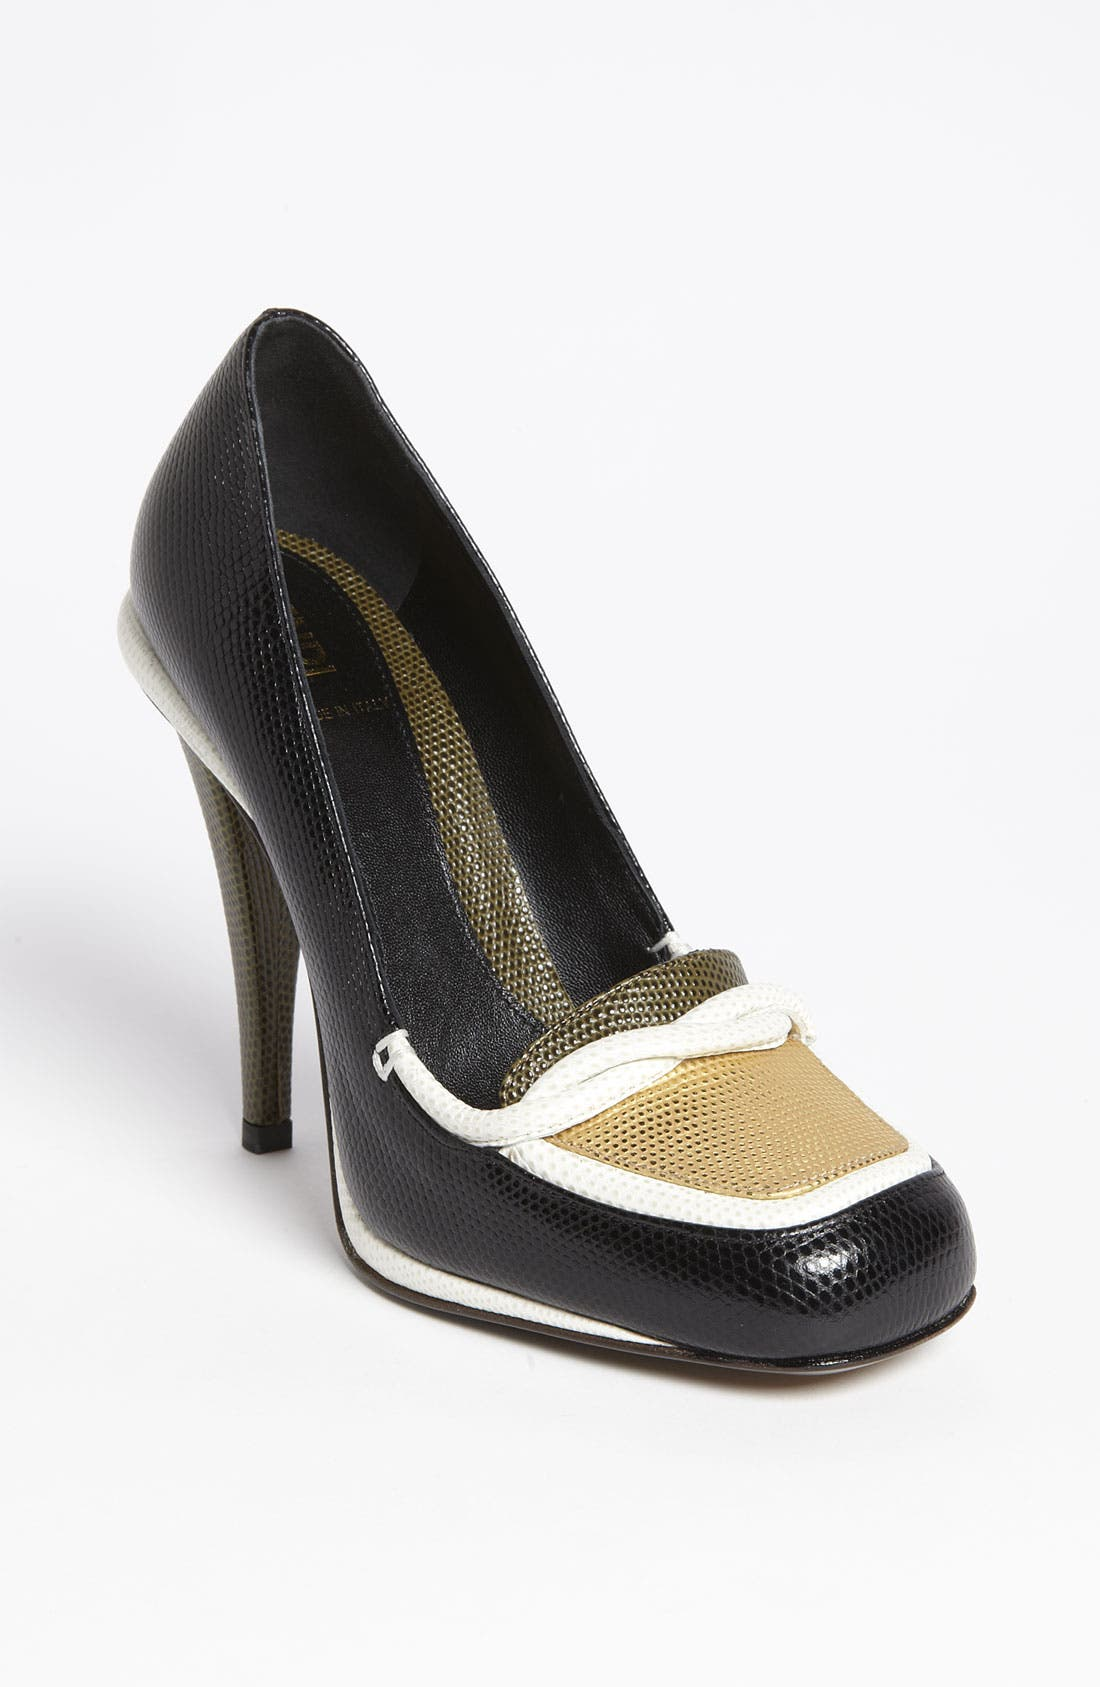 Main Image - Fendi 'Flapper' Pump